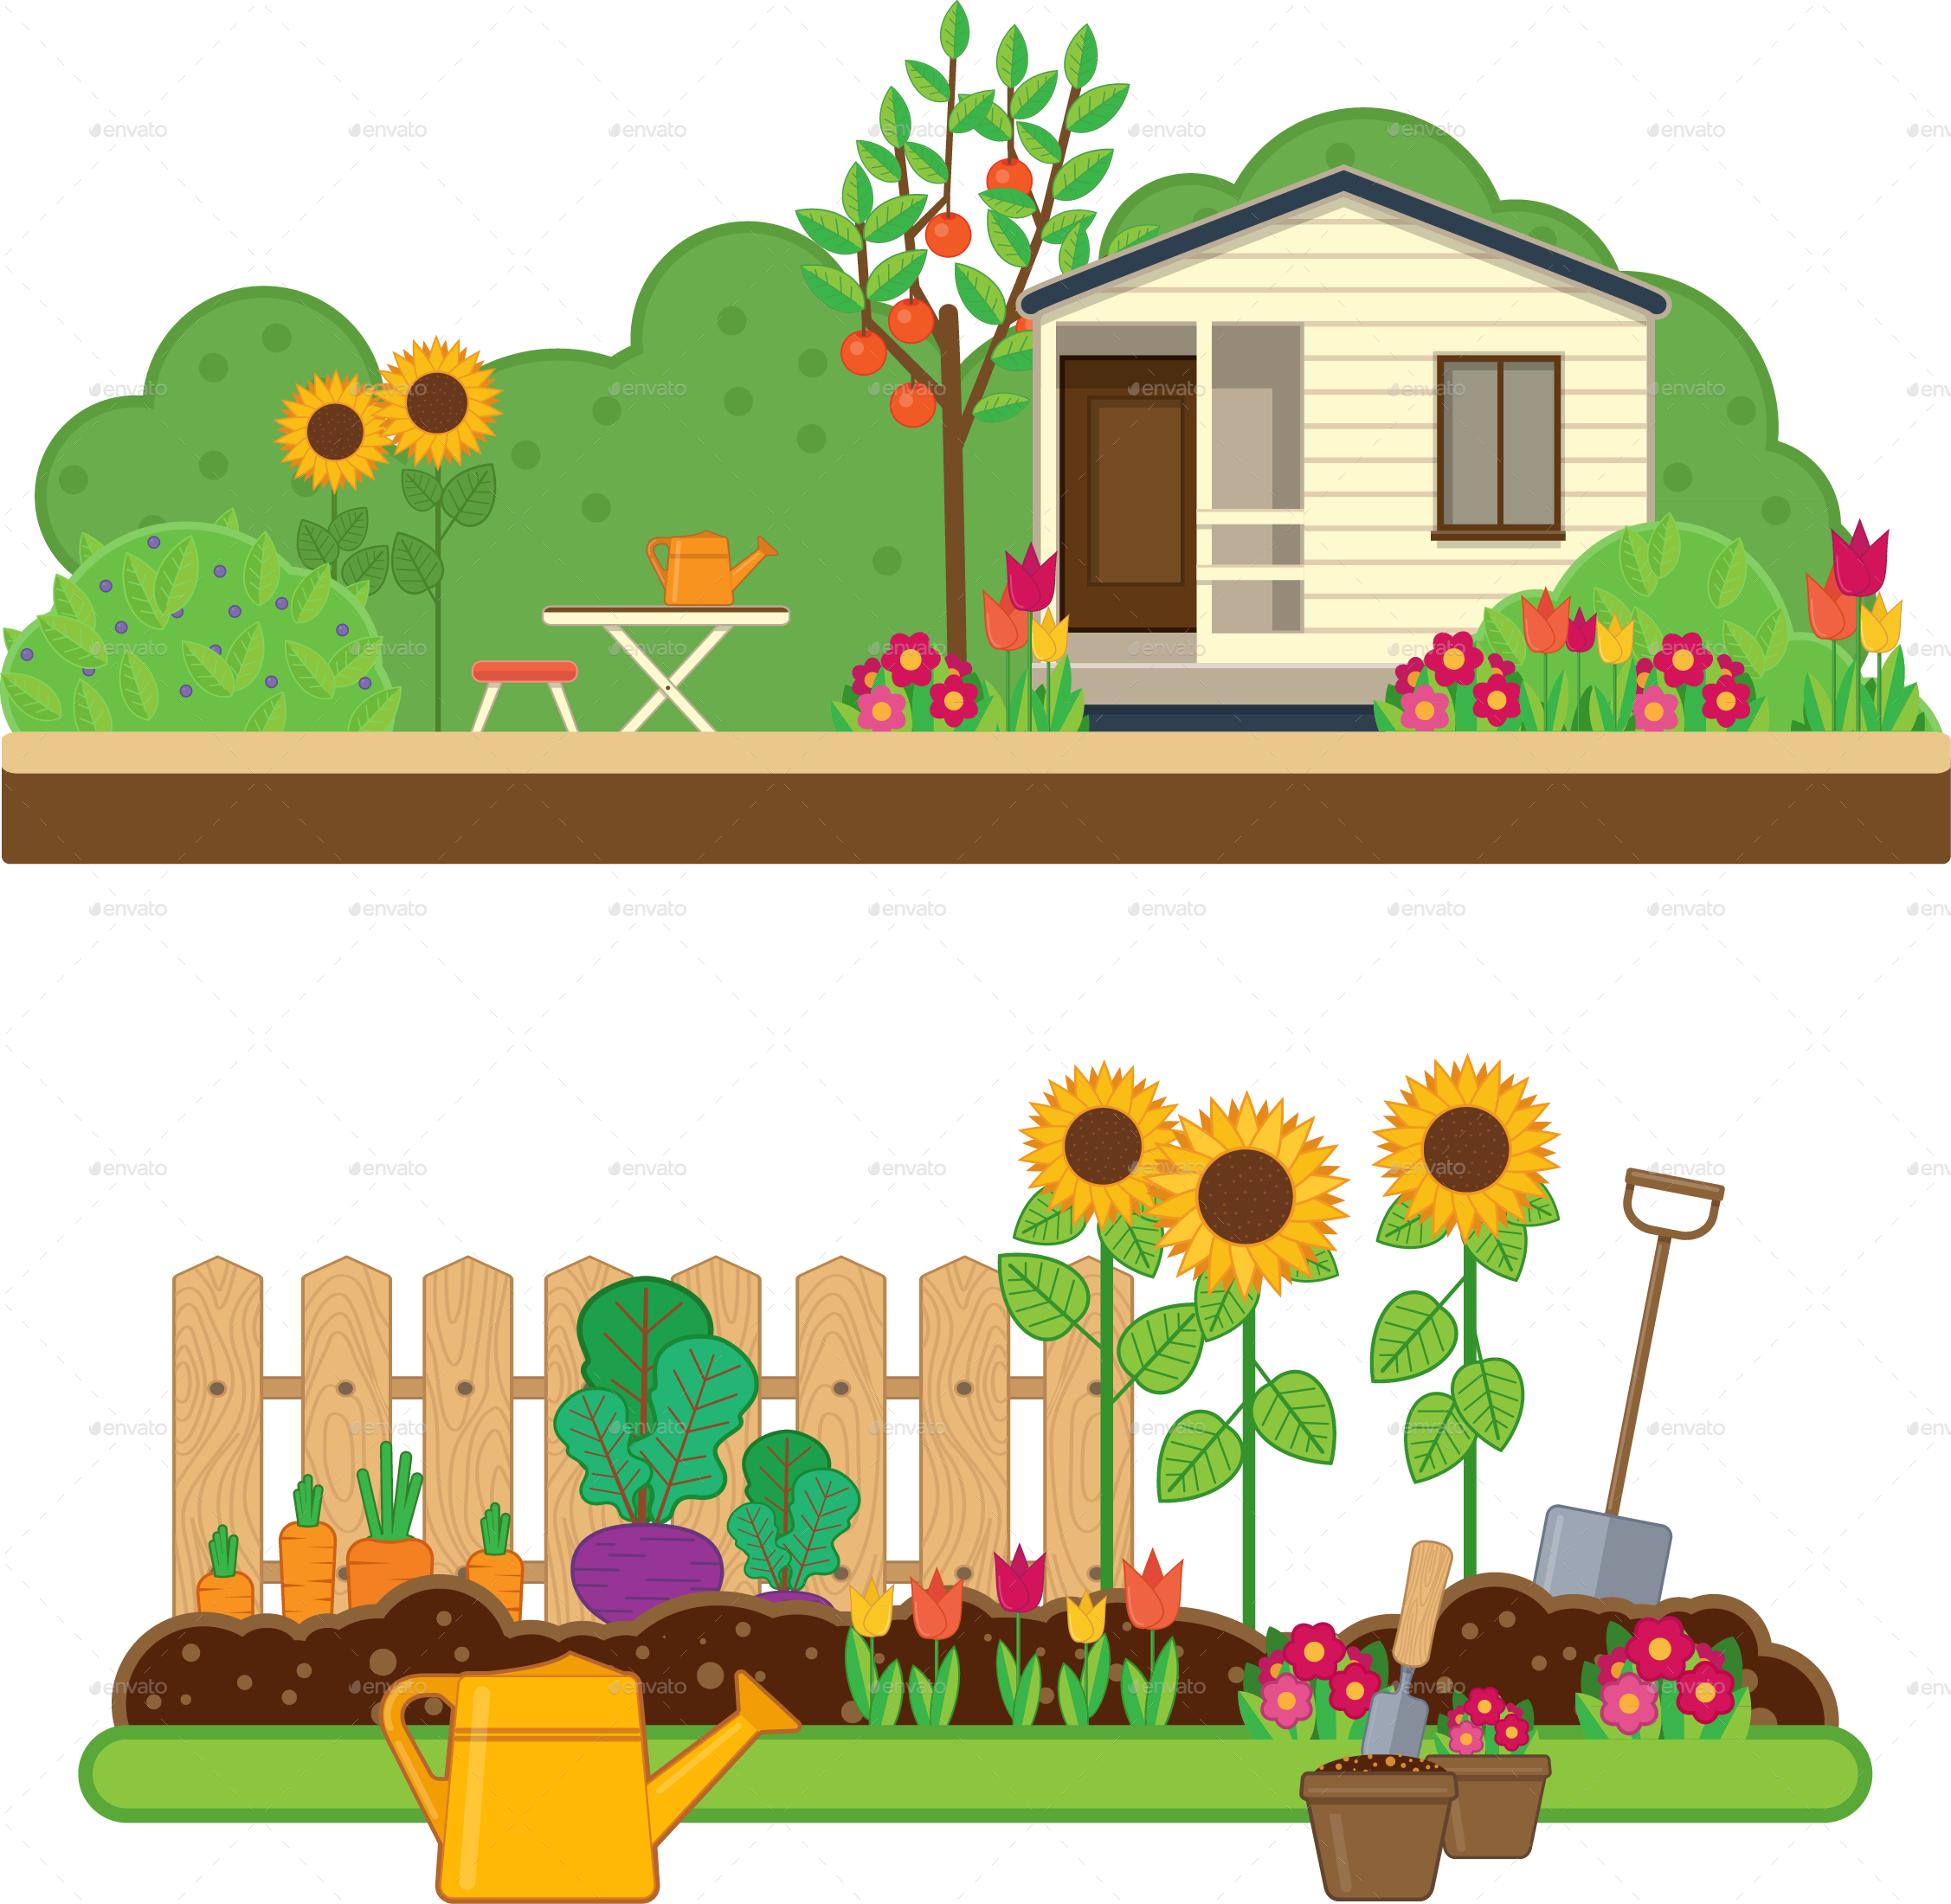 House and yard clipart black and white stock Gardening Set by Sabina-s | GraphicRiver black and white stock